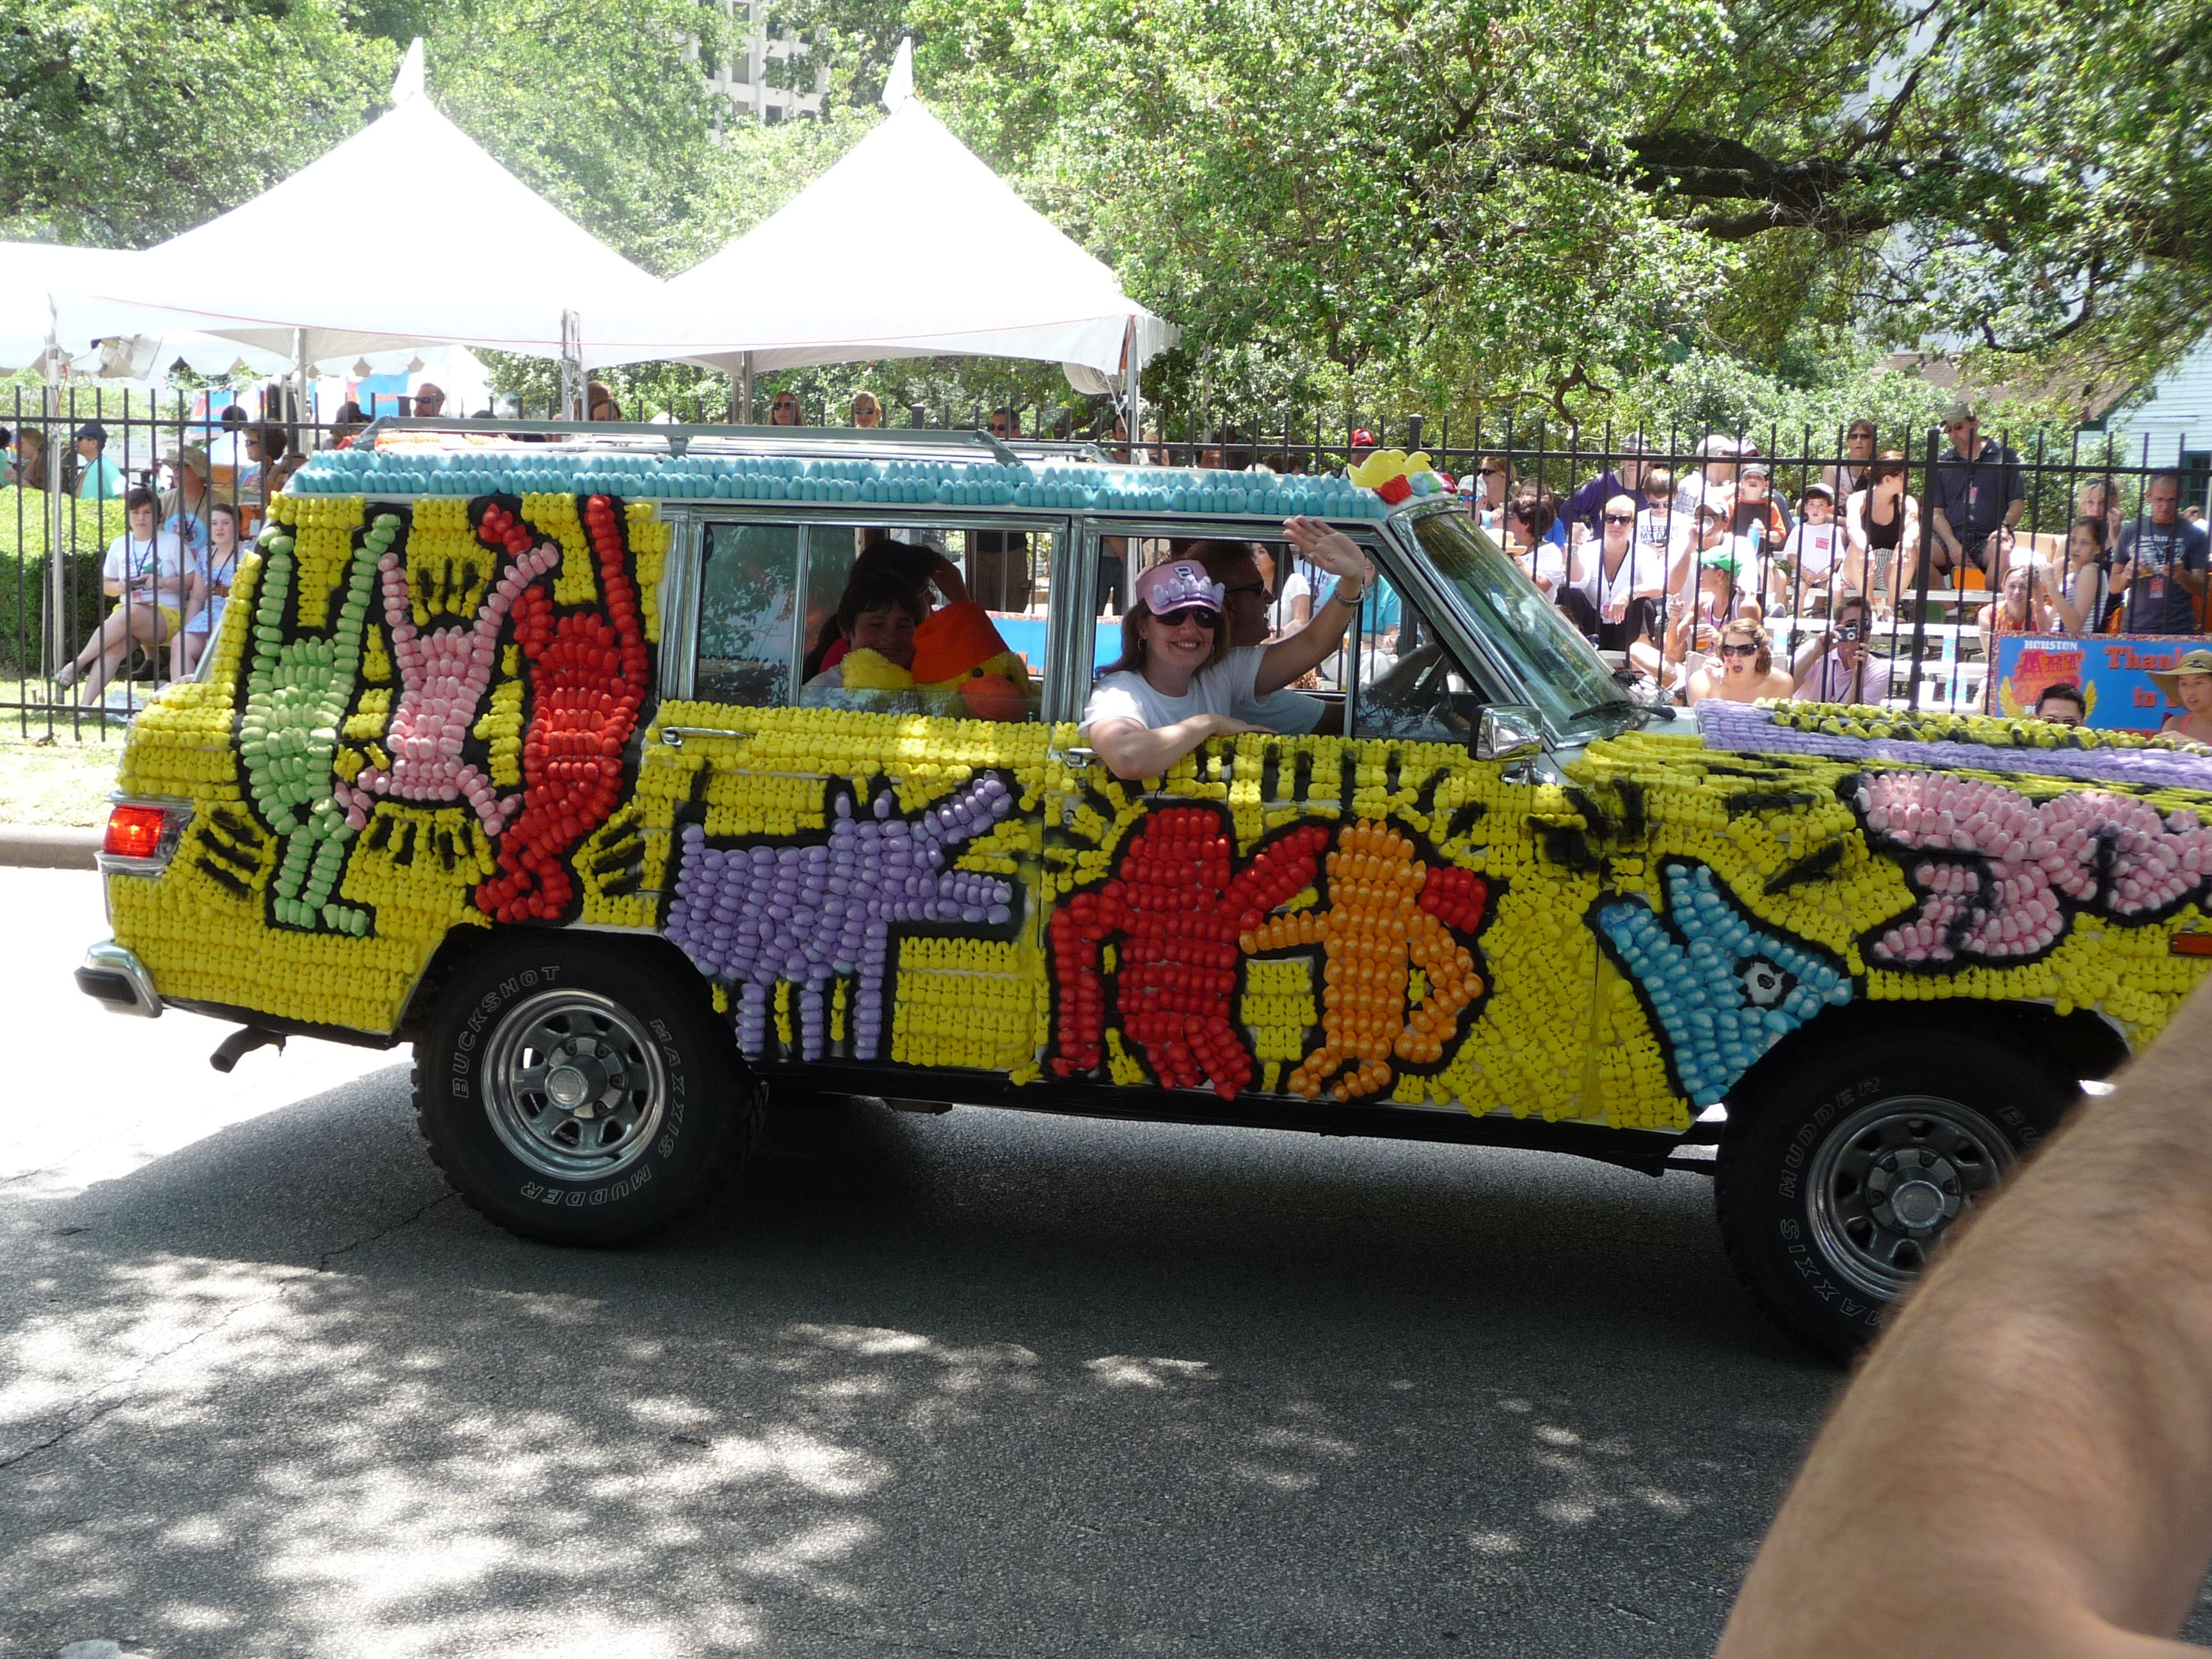 Art Car inspired by Famous Artist Keith Haring Car art